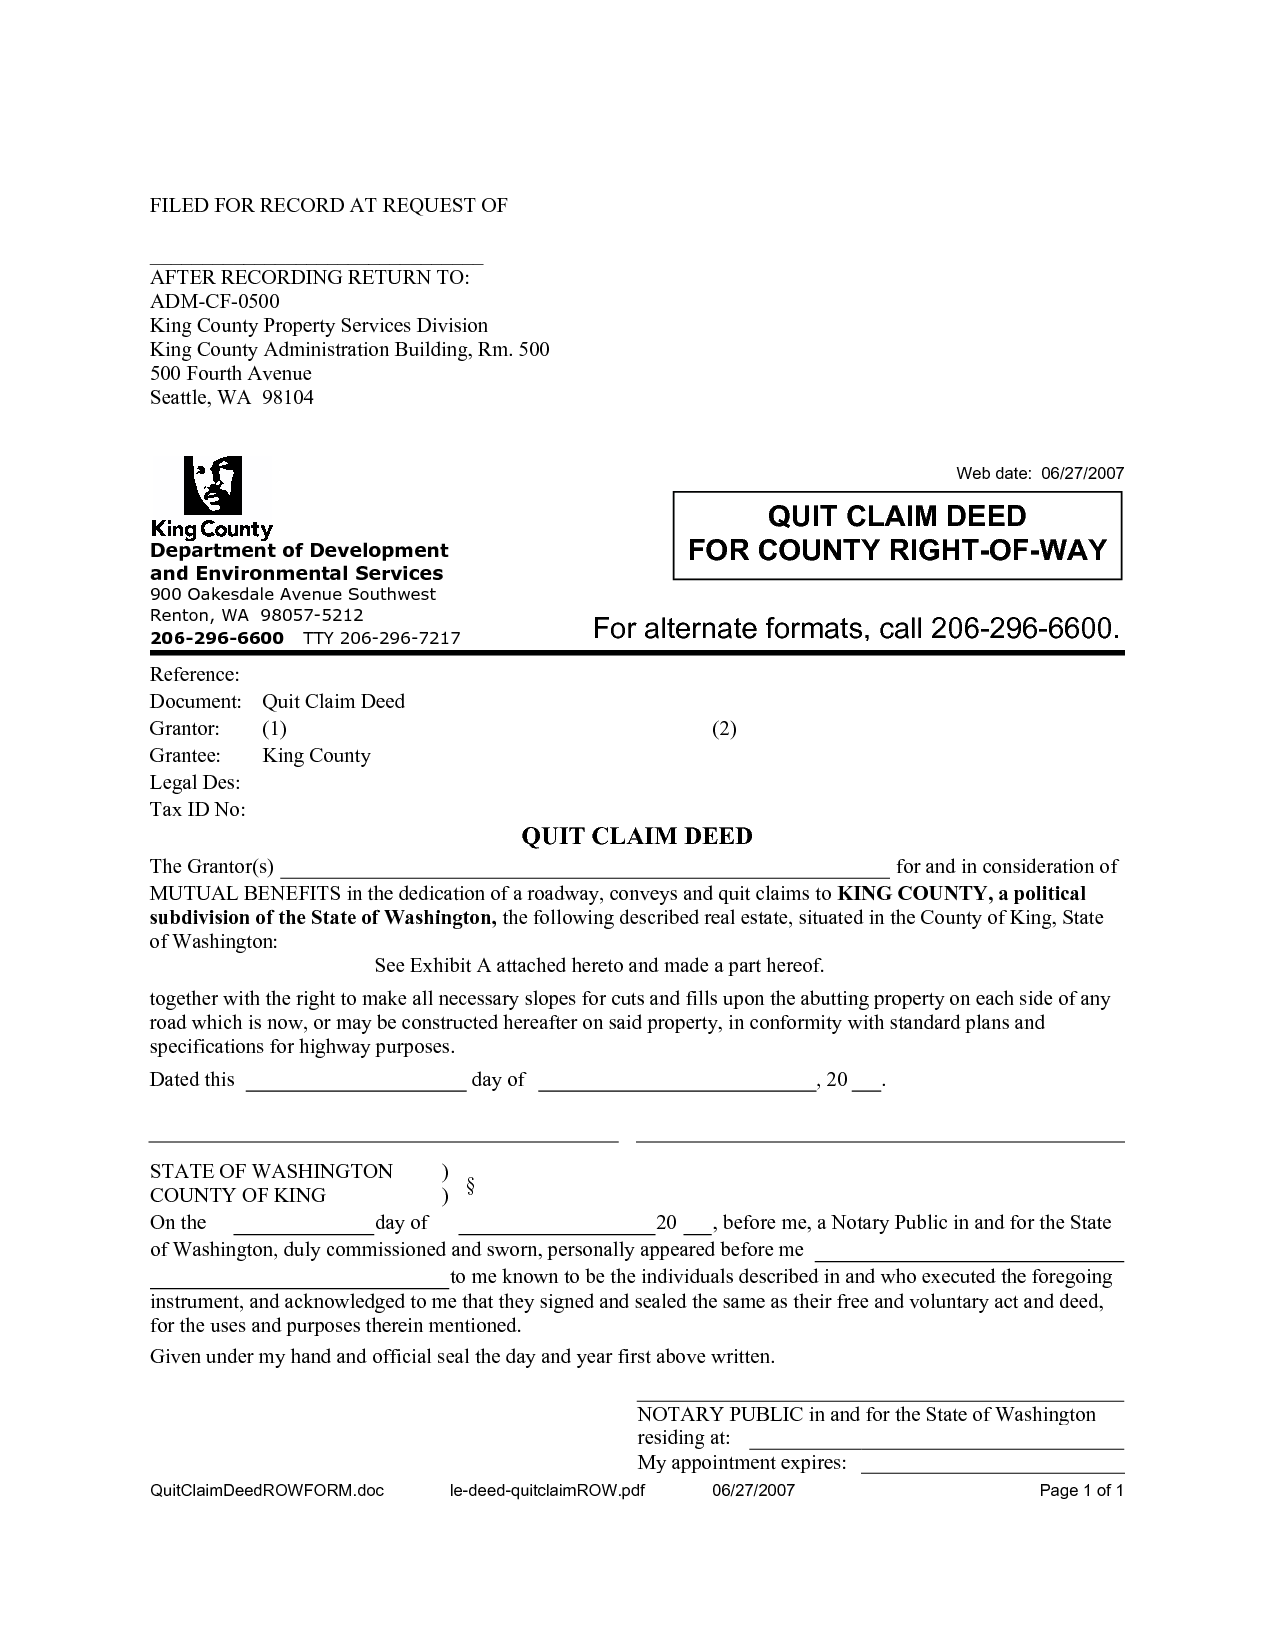 quit claim deed template free download - quit claim deed sample free printable documents